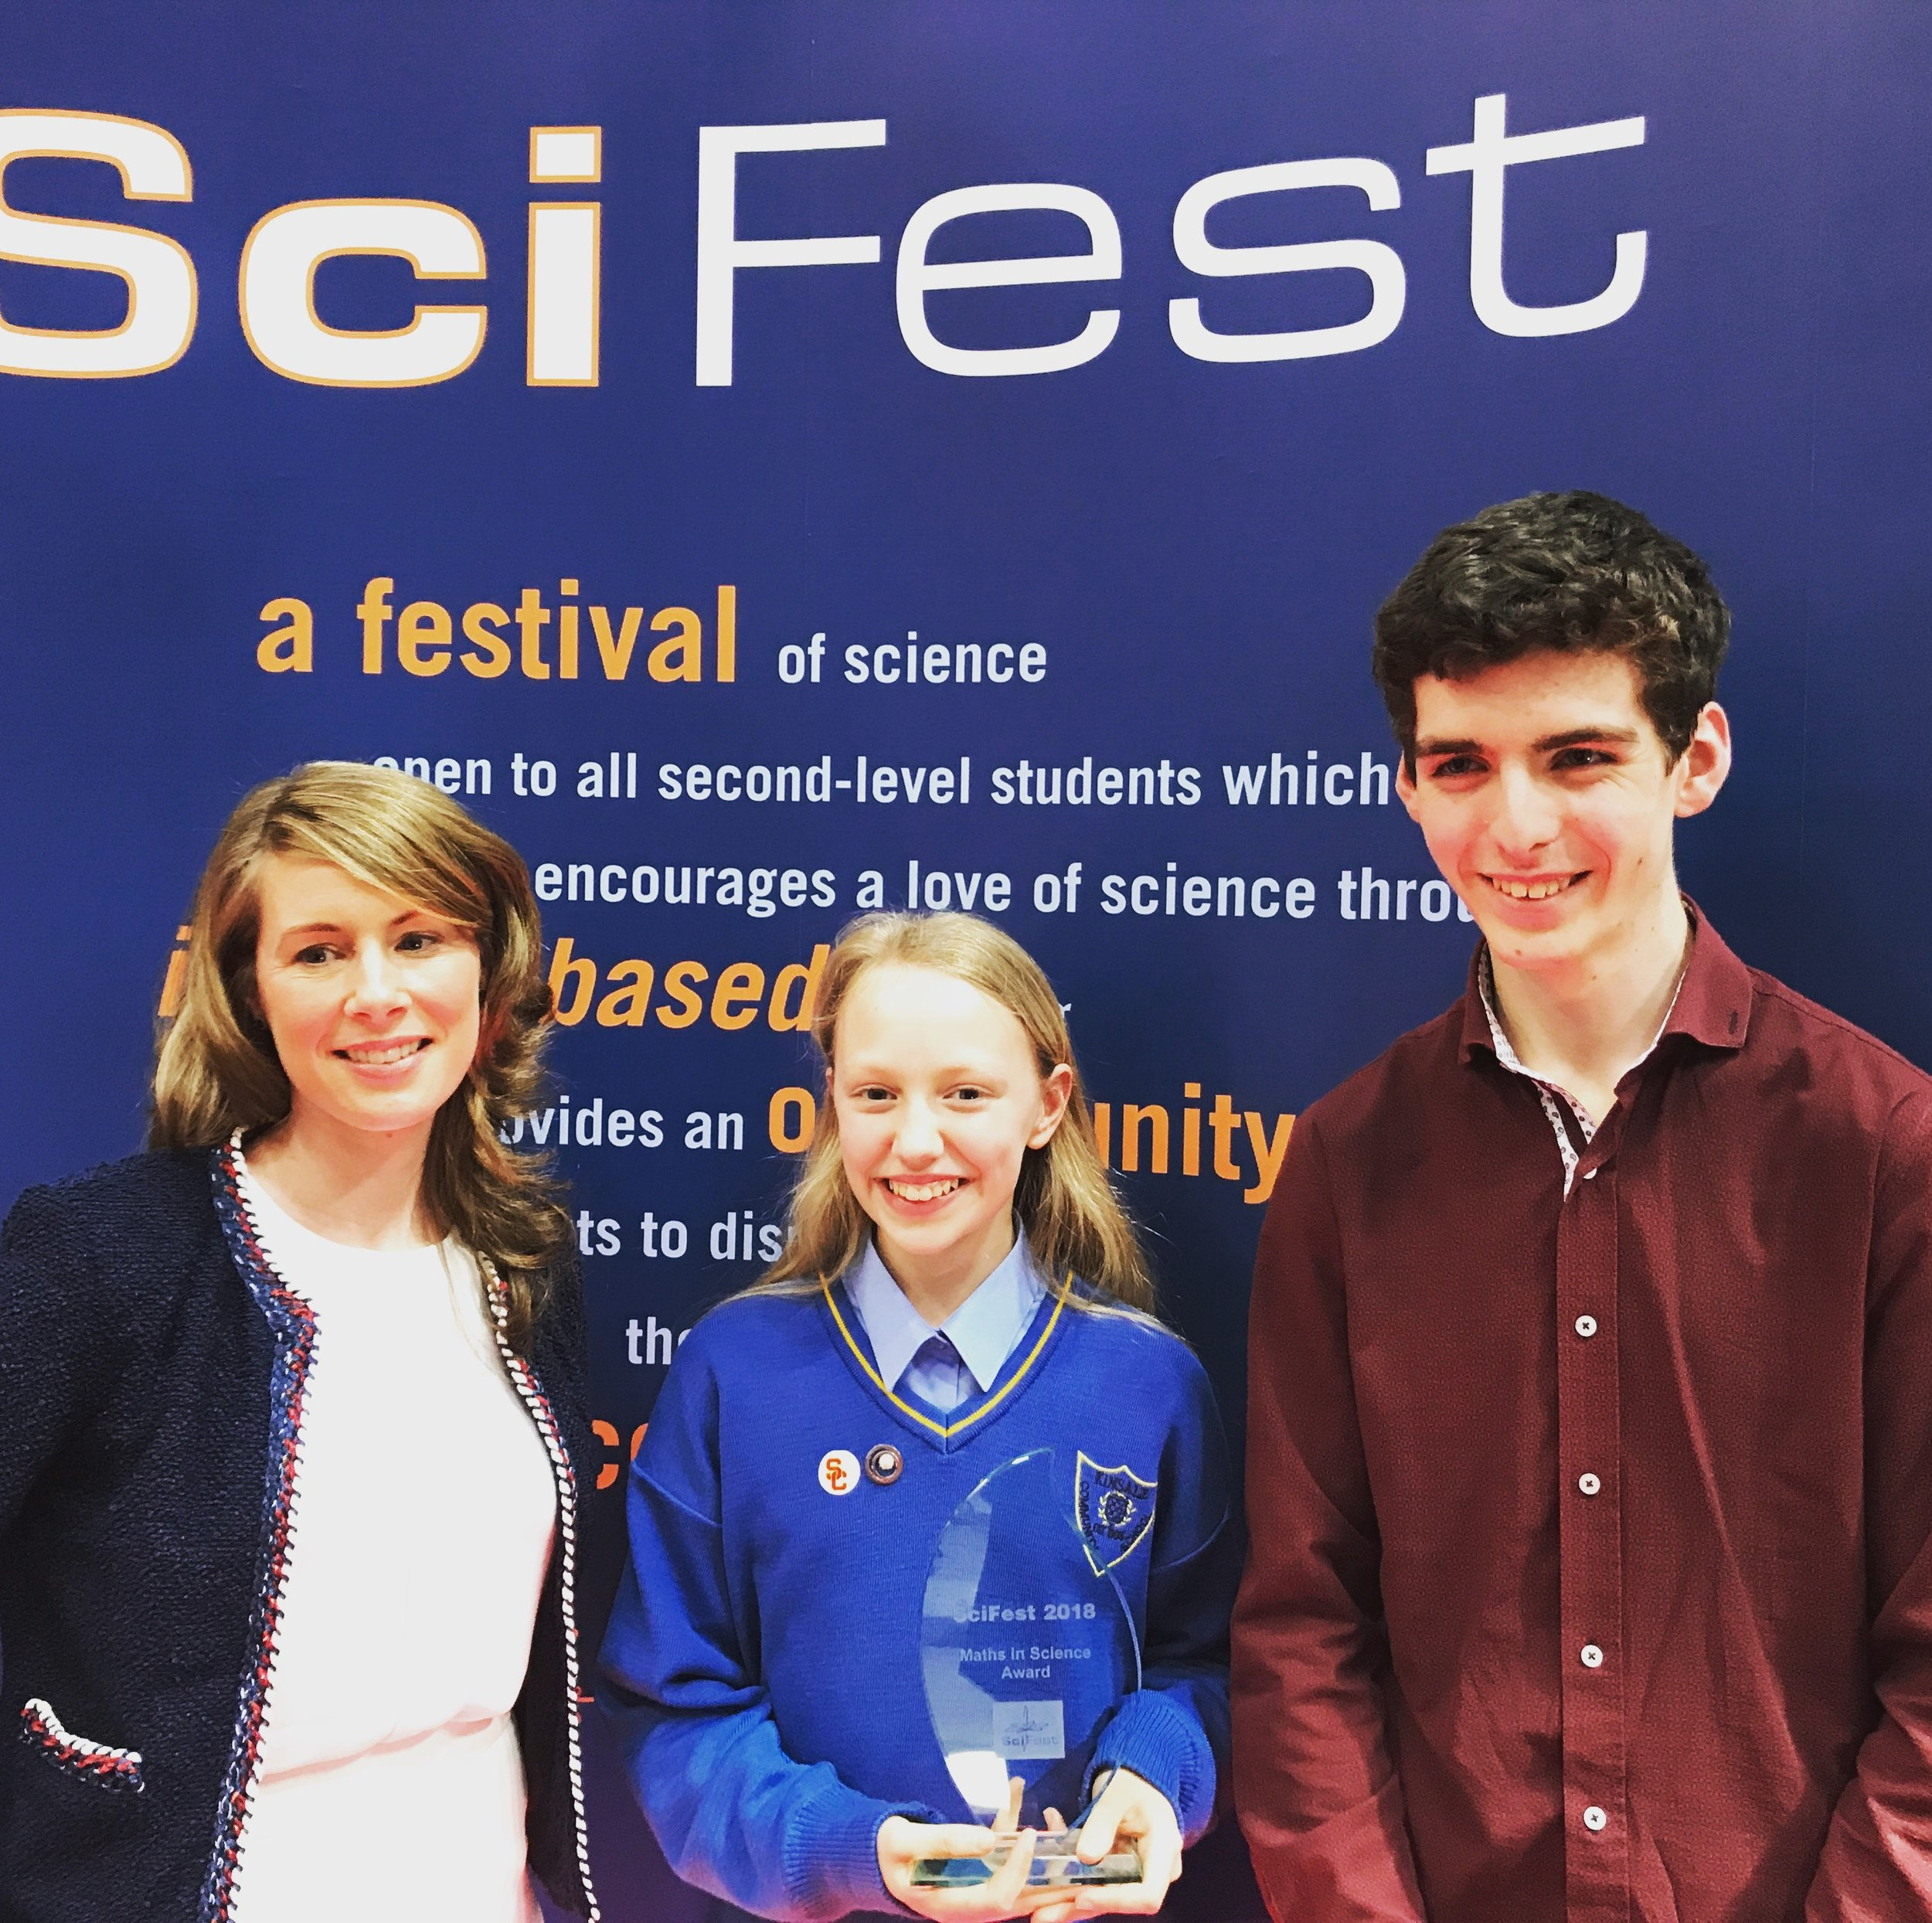 Dr. Sharon Lawton B.Sc Ph.D of Cork Institute of Technology with award winner Sarah Fitzgerald and BTYSTE 2018 winner Simon Meehan at the Sci Fest 2018 Award. Well done to Simon on his amazing work.